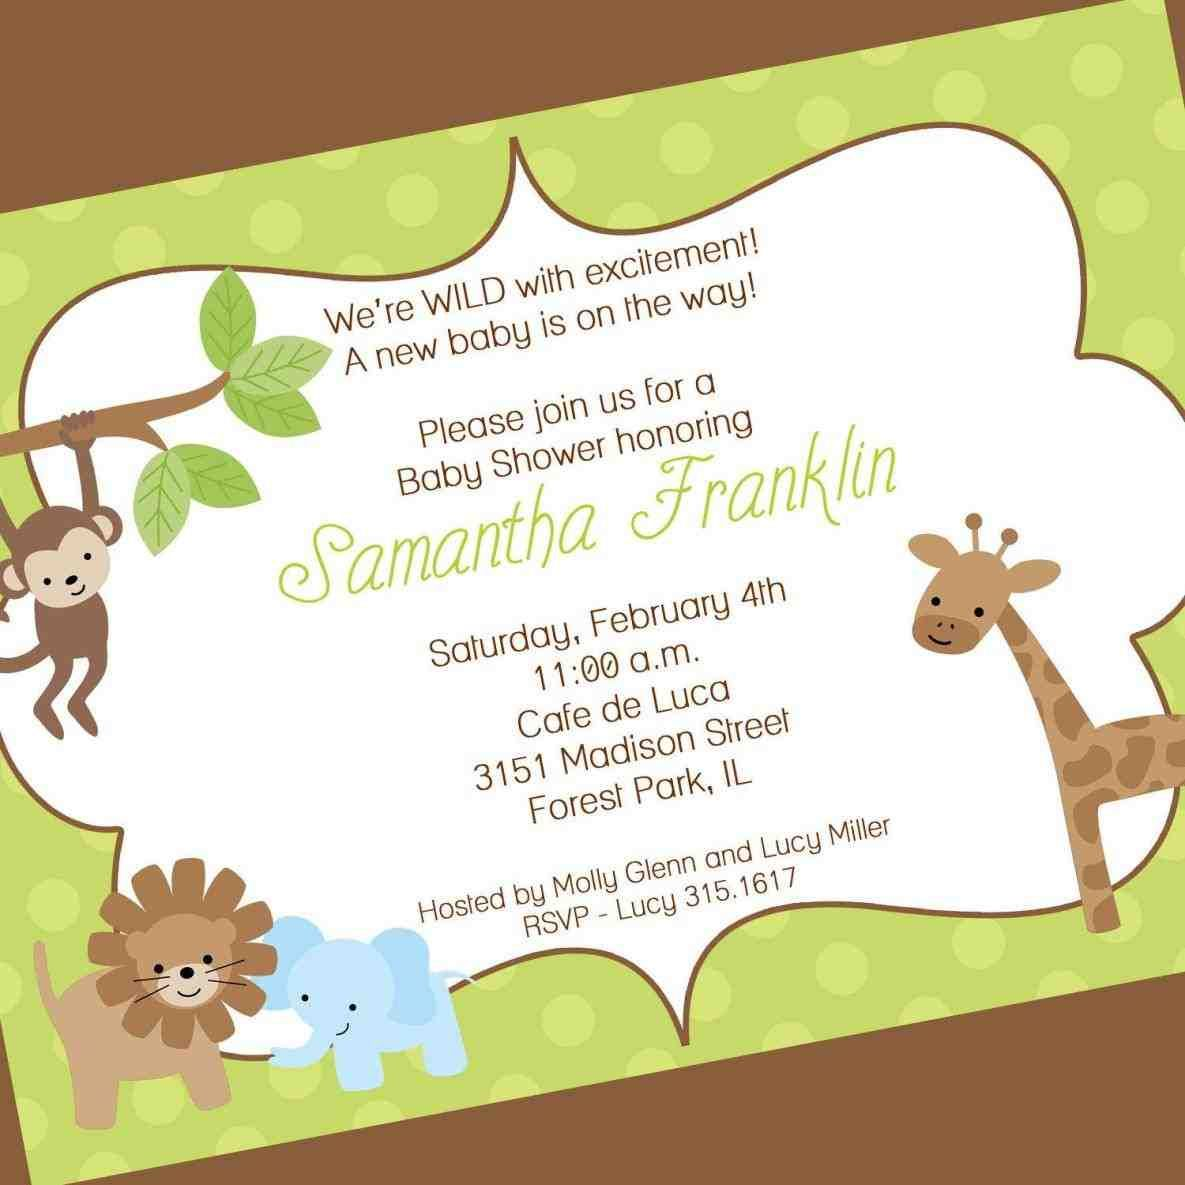 camo girl hunting 6 birthday party printable invitation 5×7. full ...